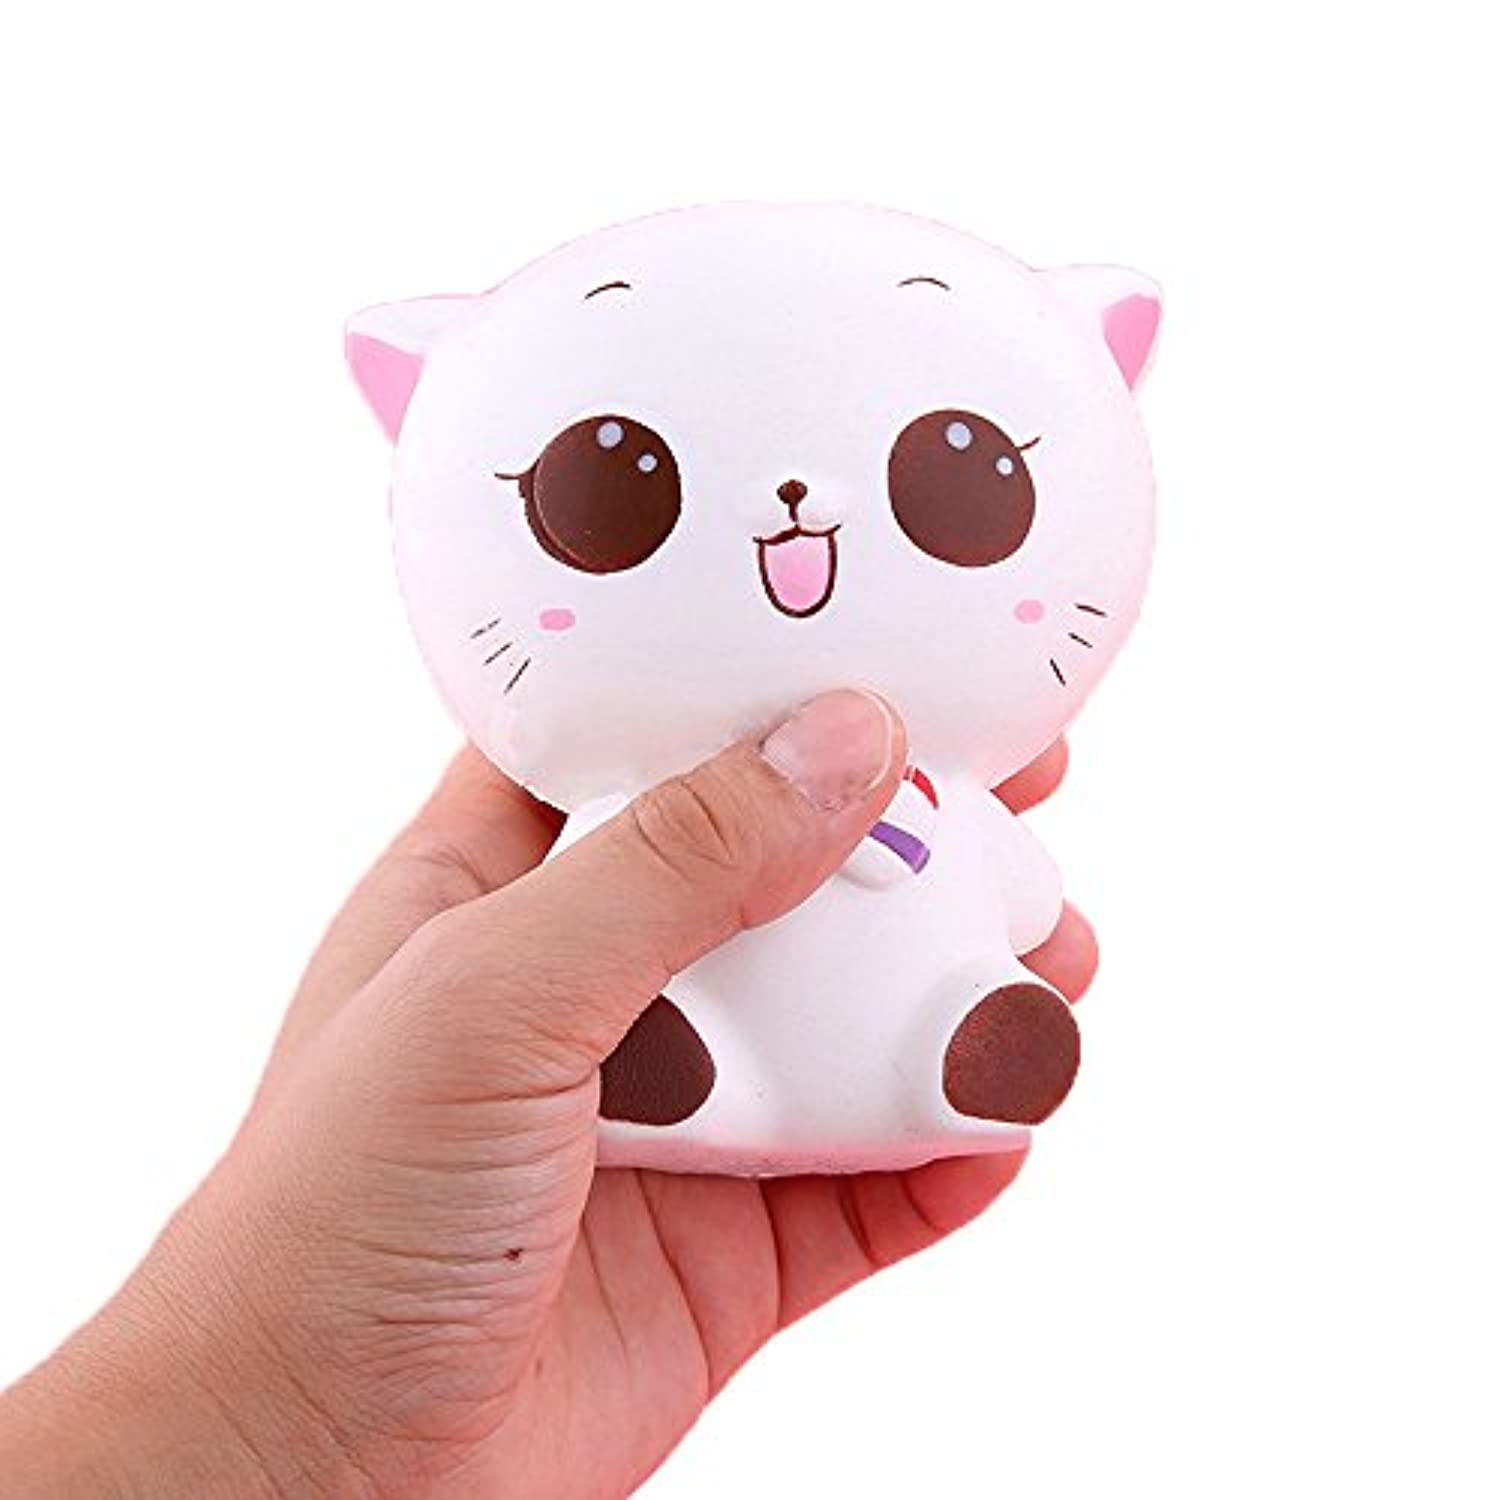 ftxj Squishy Kitty Cat人形Slow Risingソフトピンチstressreliever Kid Toy電話チャーム 11.5*10cm FTXJ -1860511